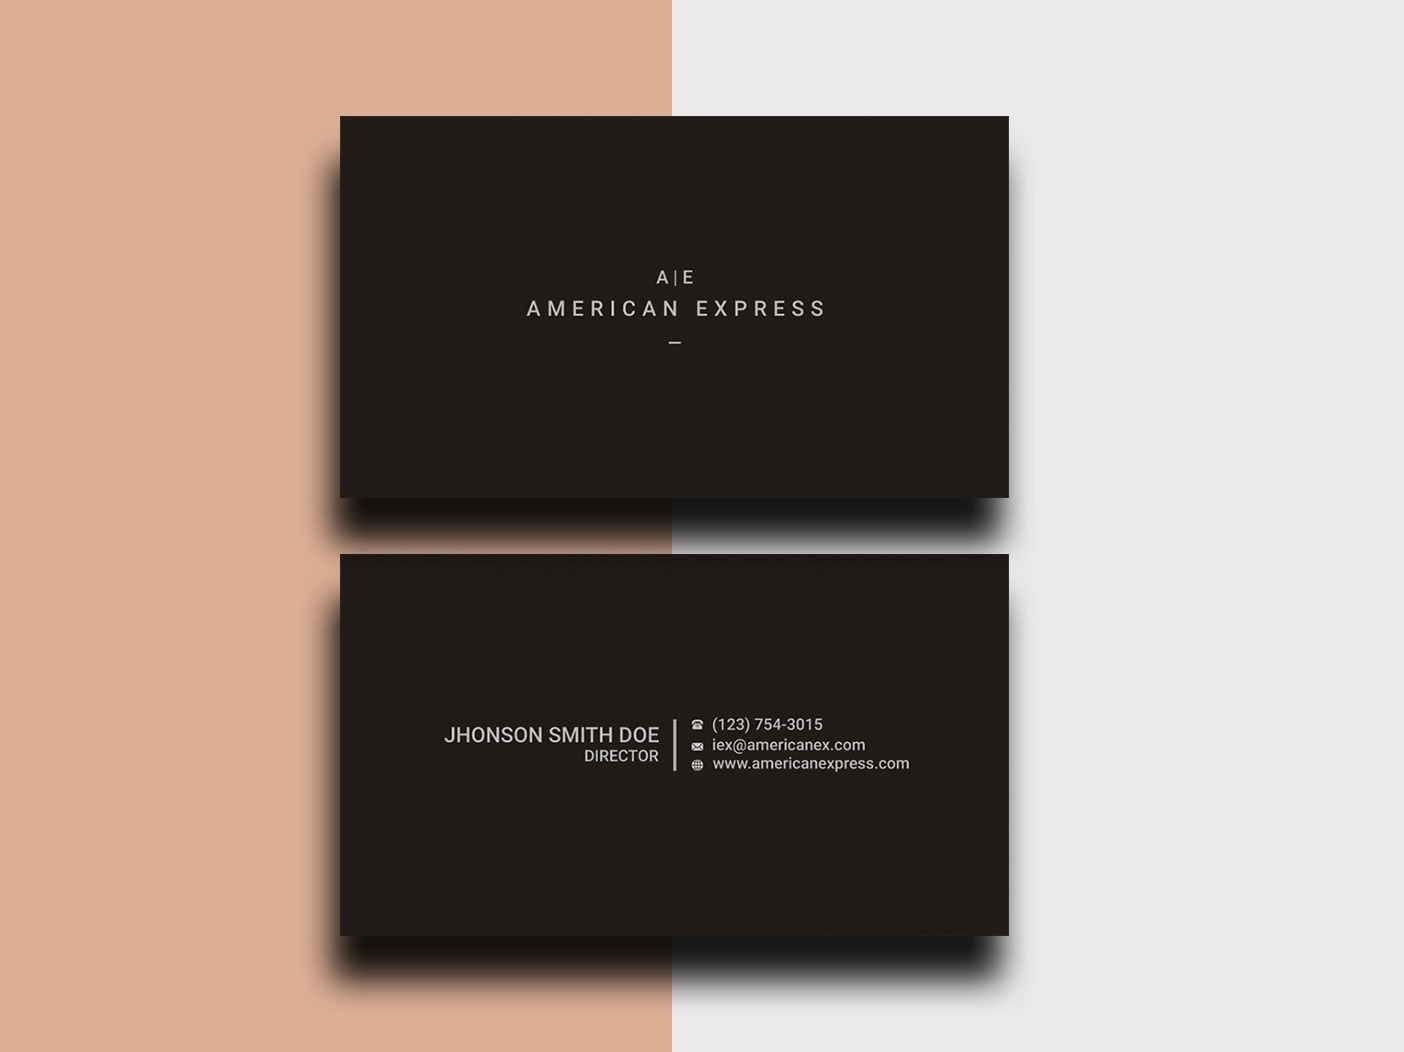 Black & White Business Card print design print corporate branding business card business card template white indesign minimal business card templates icon illustration card template logo businesscards elegant cards design template business